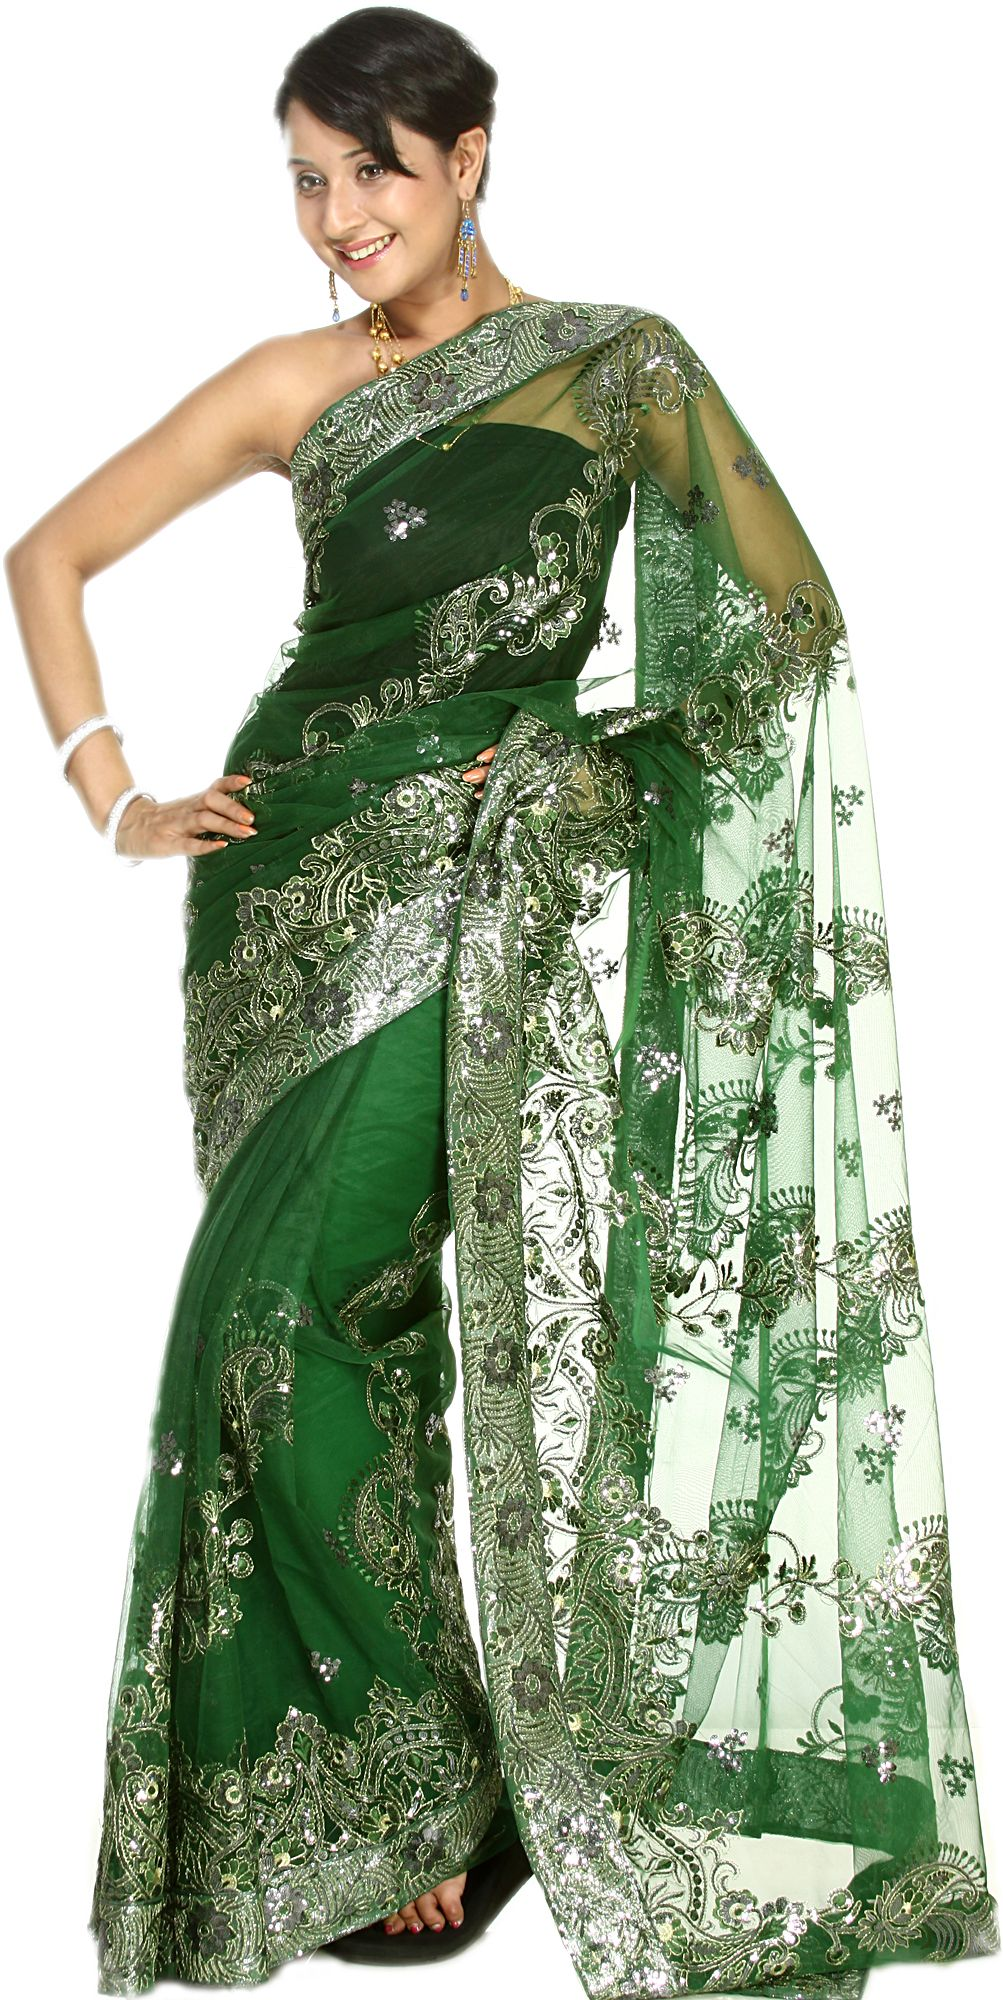 9f89c63d79b81c Bottle-Green Sari with Embroidered Silver-Colored Sequins All-Over ...